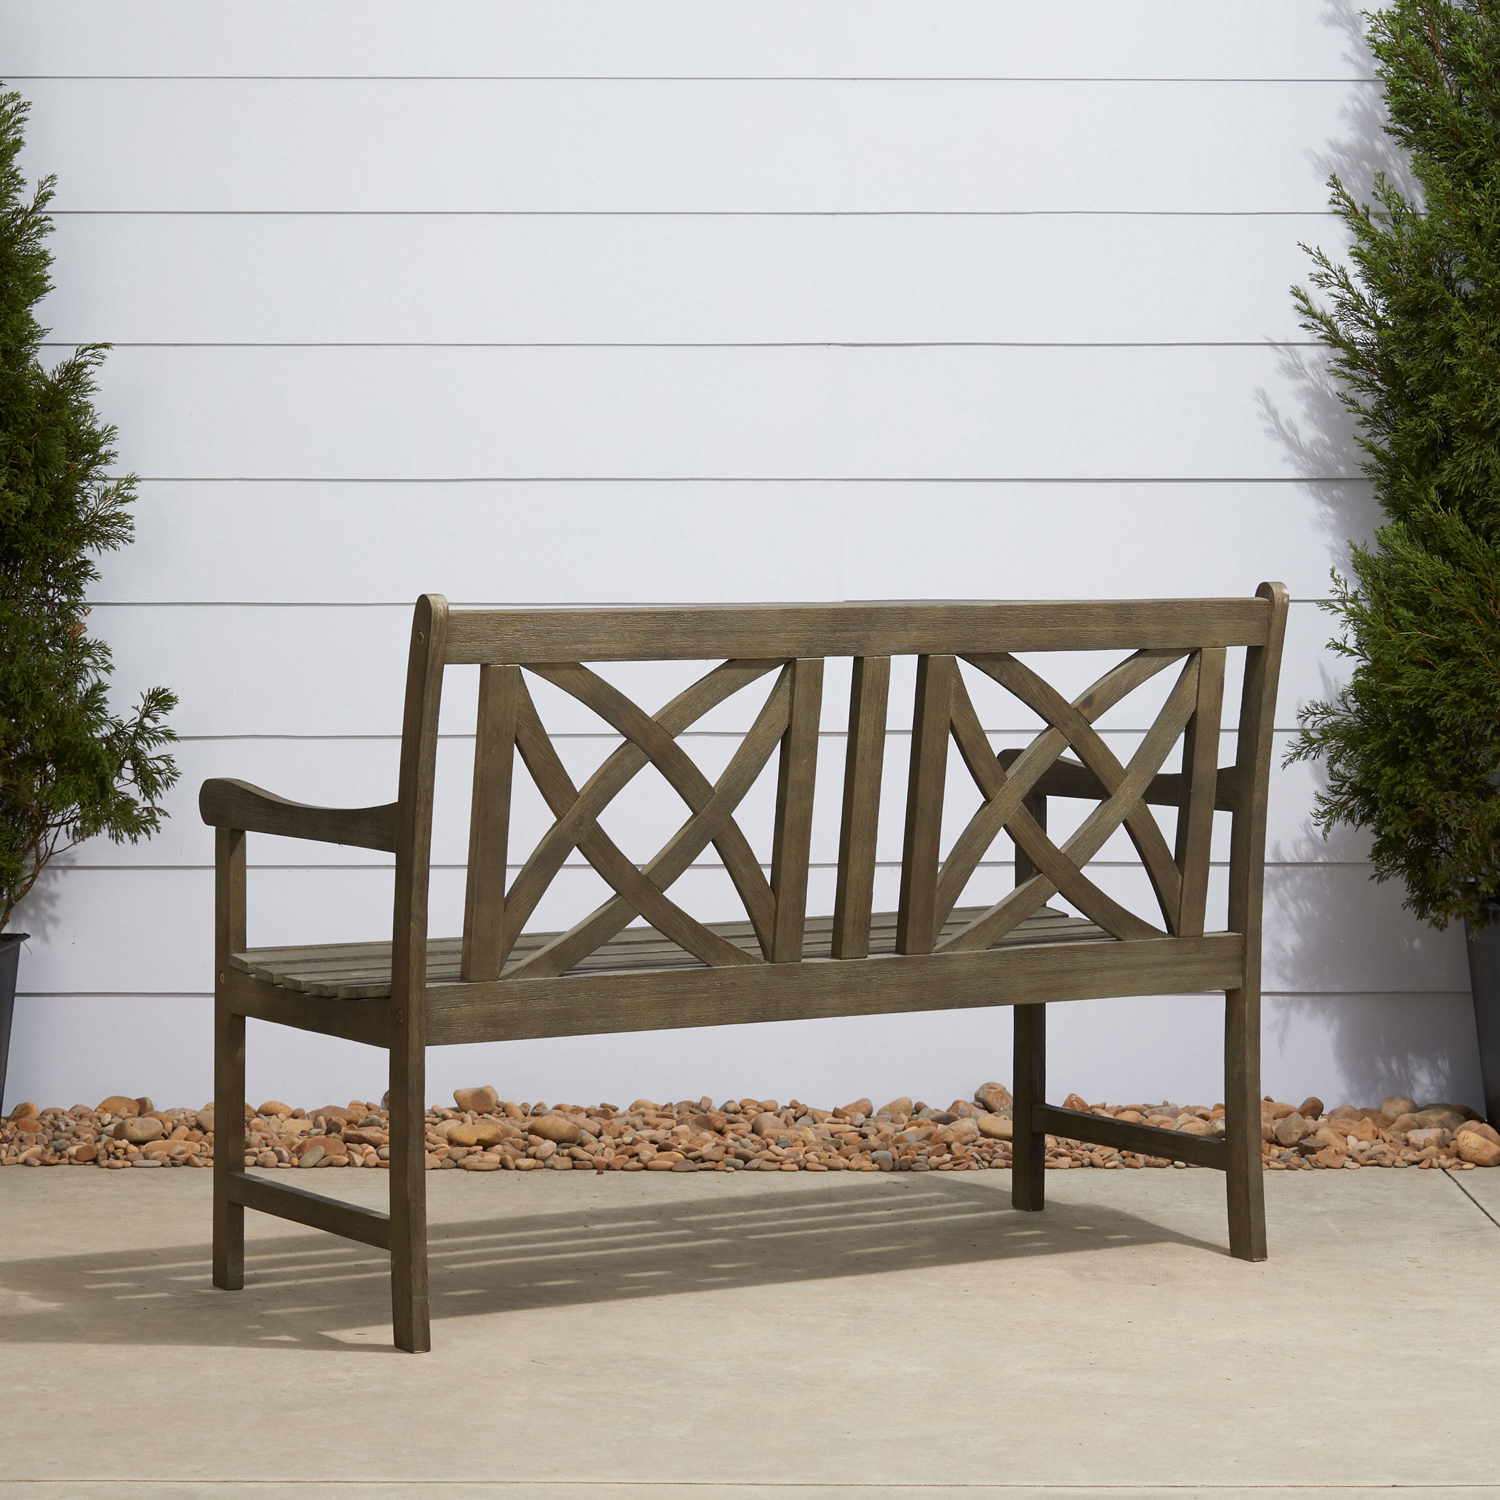 Renaissance 4' Hand-Scraped Wood Garden Bench